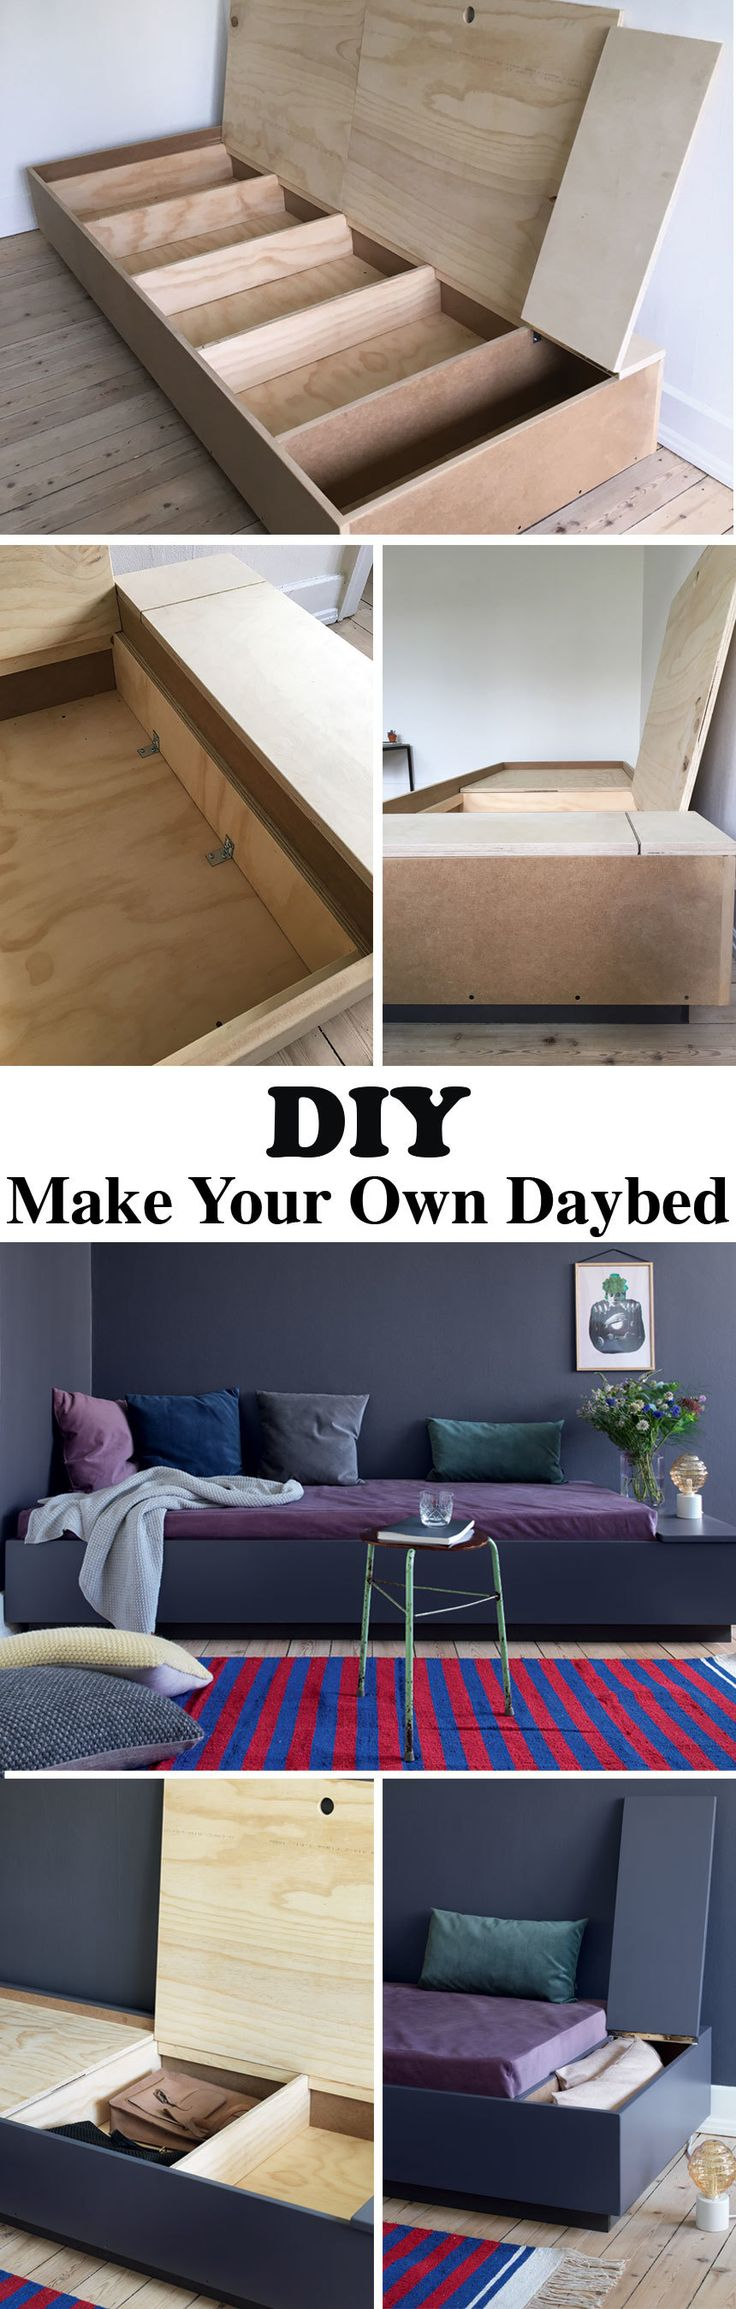 Diy sofa plans build your own couch build your own couch with - This Diy Daybed Is Cheap And Easy To Make And Provides Lots Of Storage In The